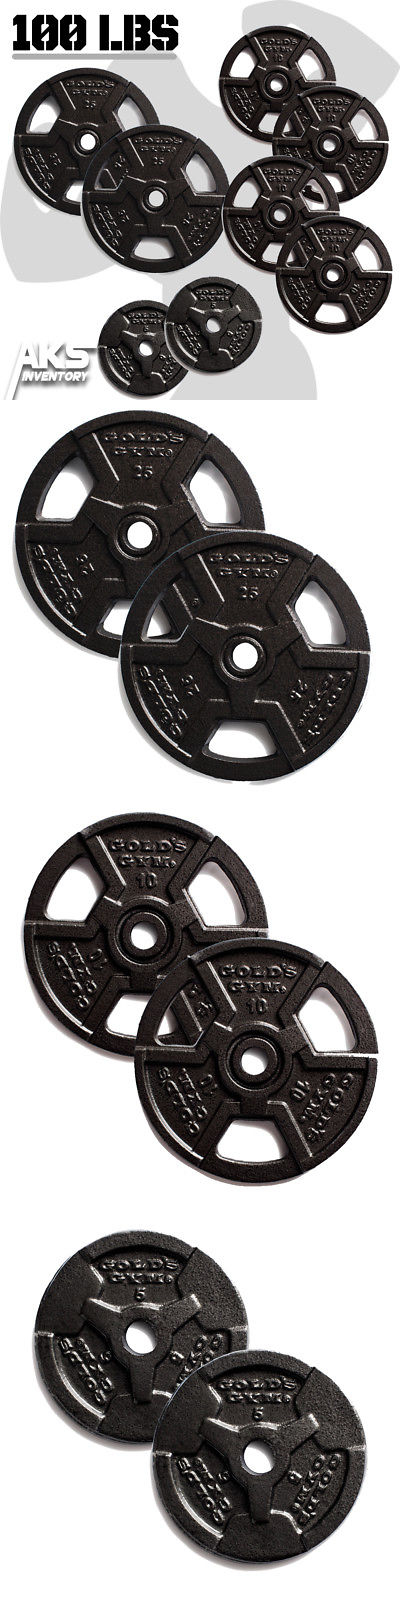 Weight Plates 179817 100 Pound Standard Weight Plate Set Home Gym Fitness Exercise Plates 1  sc 1 st  Pinterest & Weight Plates 179817: 100 Pound Standard Weight Plate Set Home Gym ...